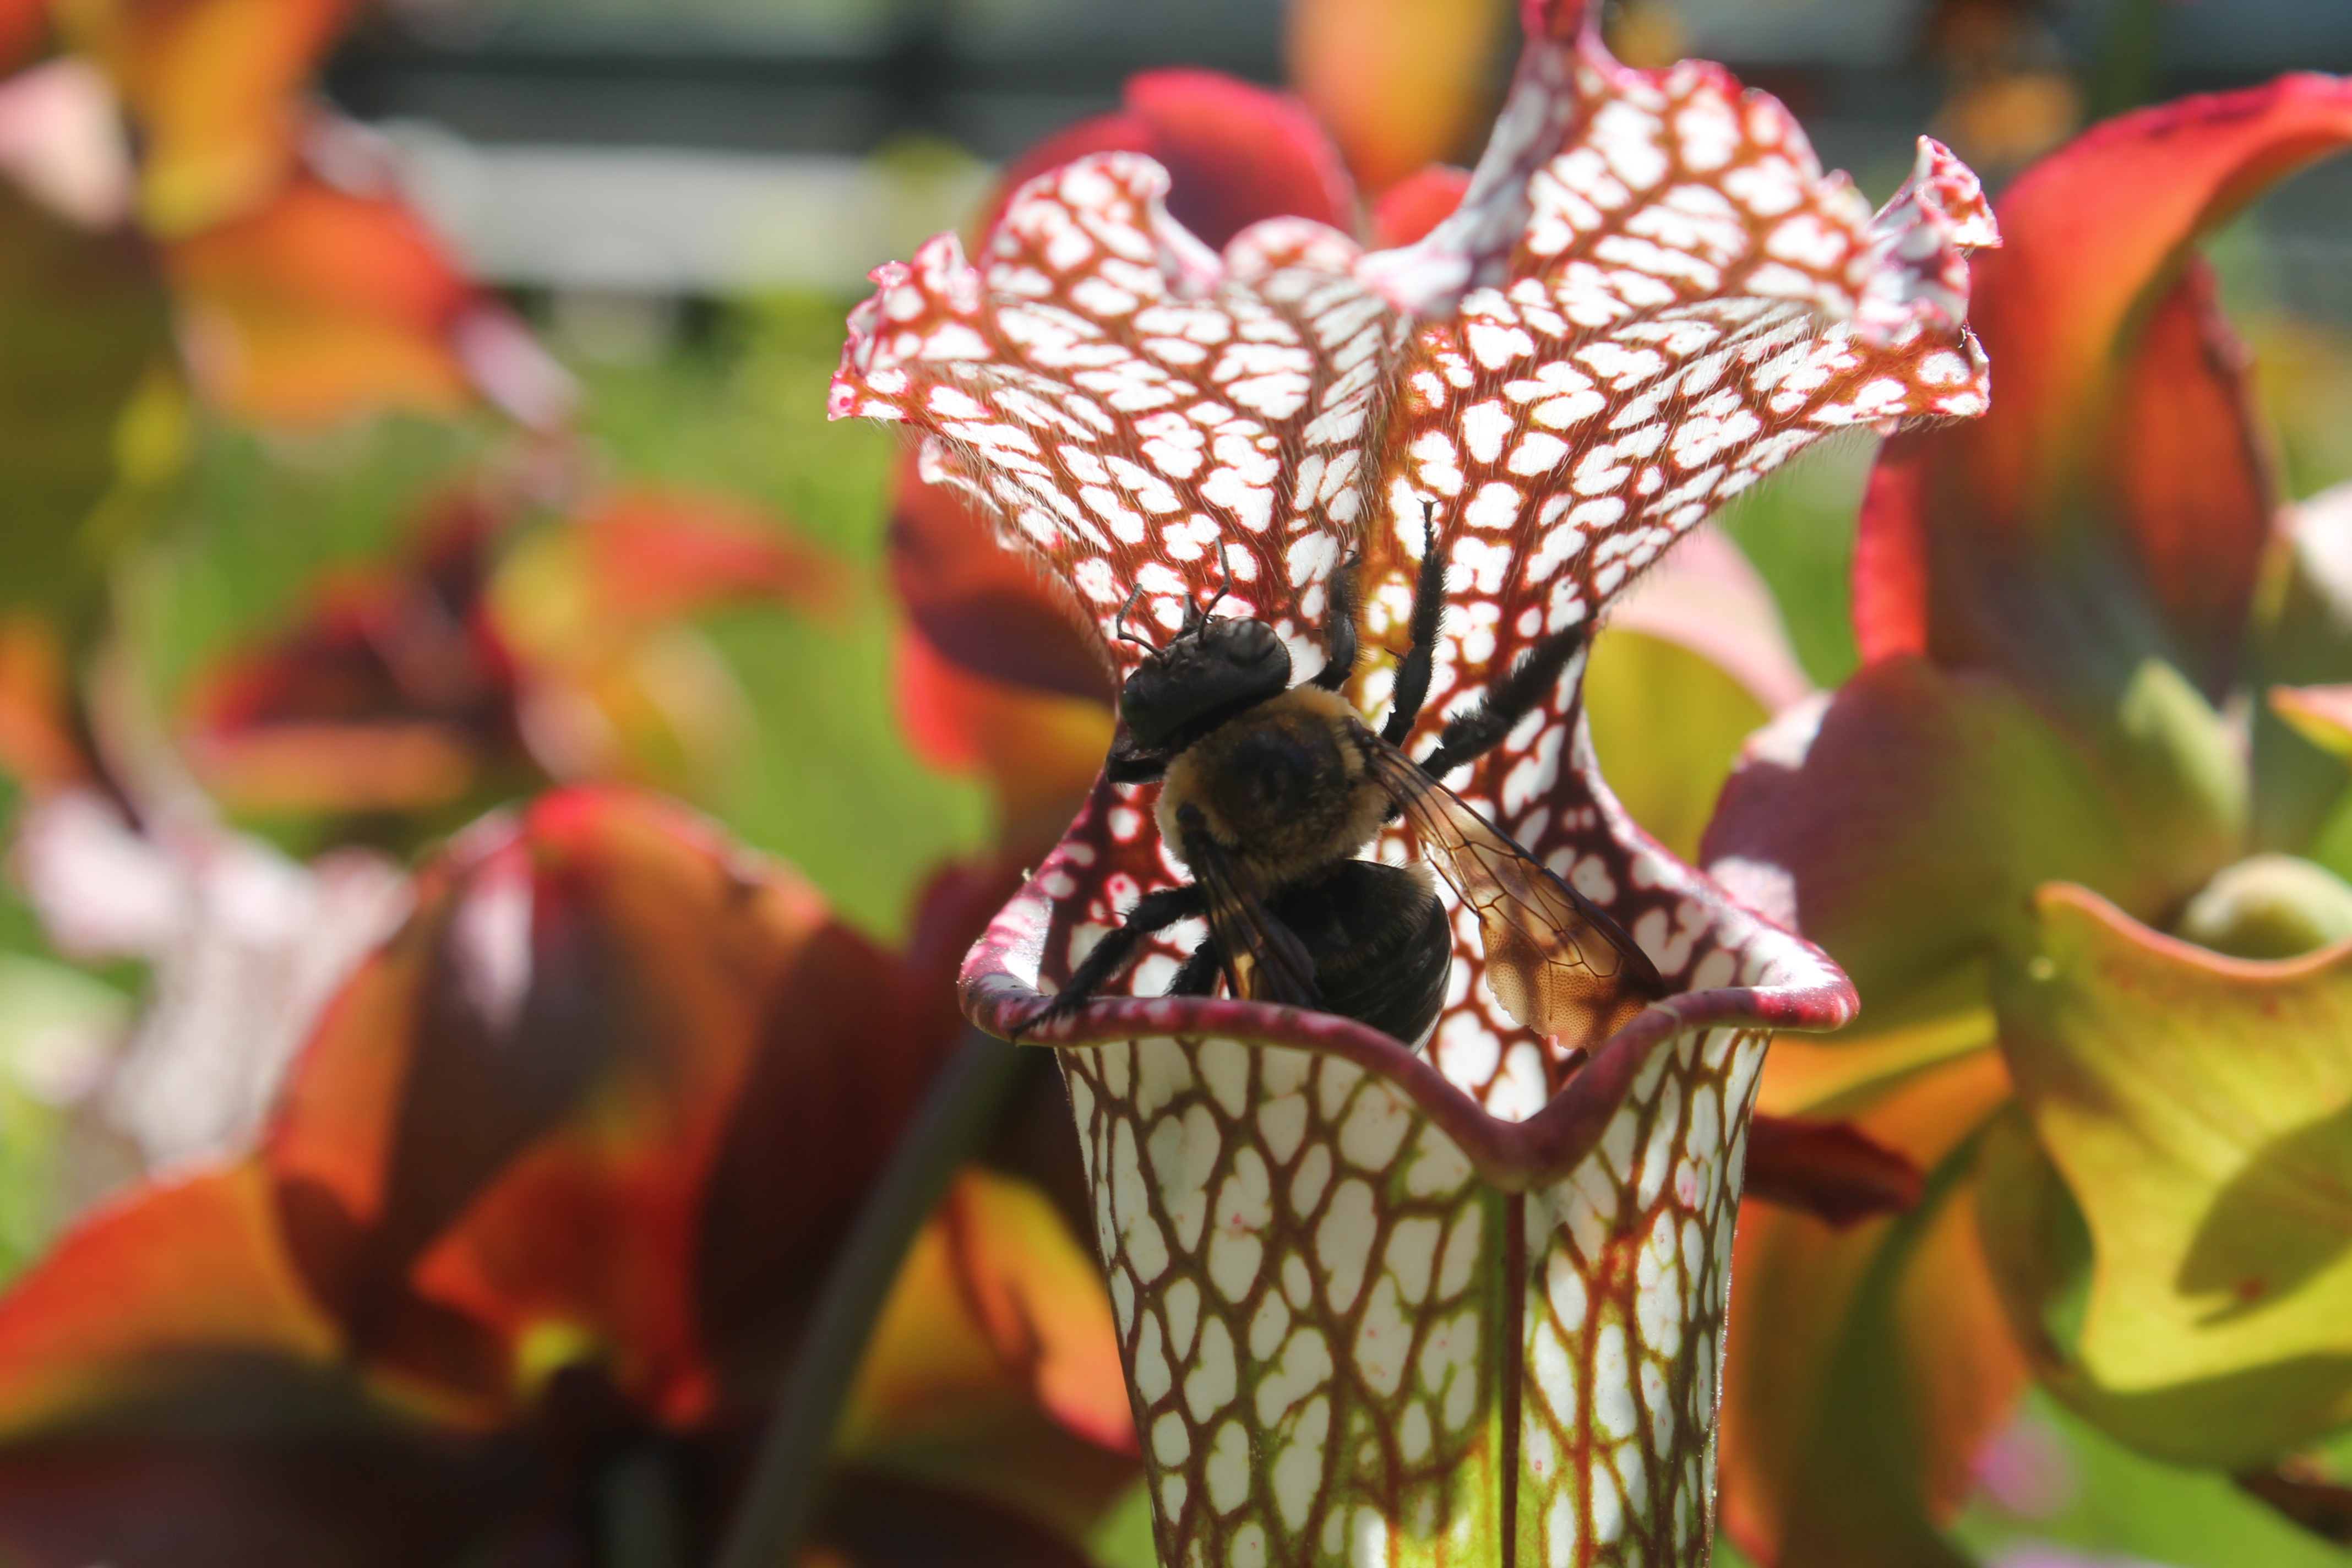 The Pitcher Plant and the Bee, Bee, North, Usa, Southeast, HQ Photo